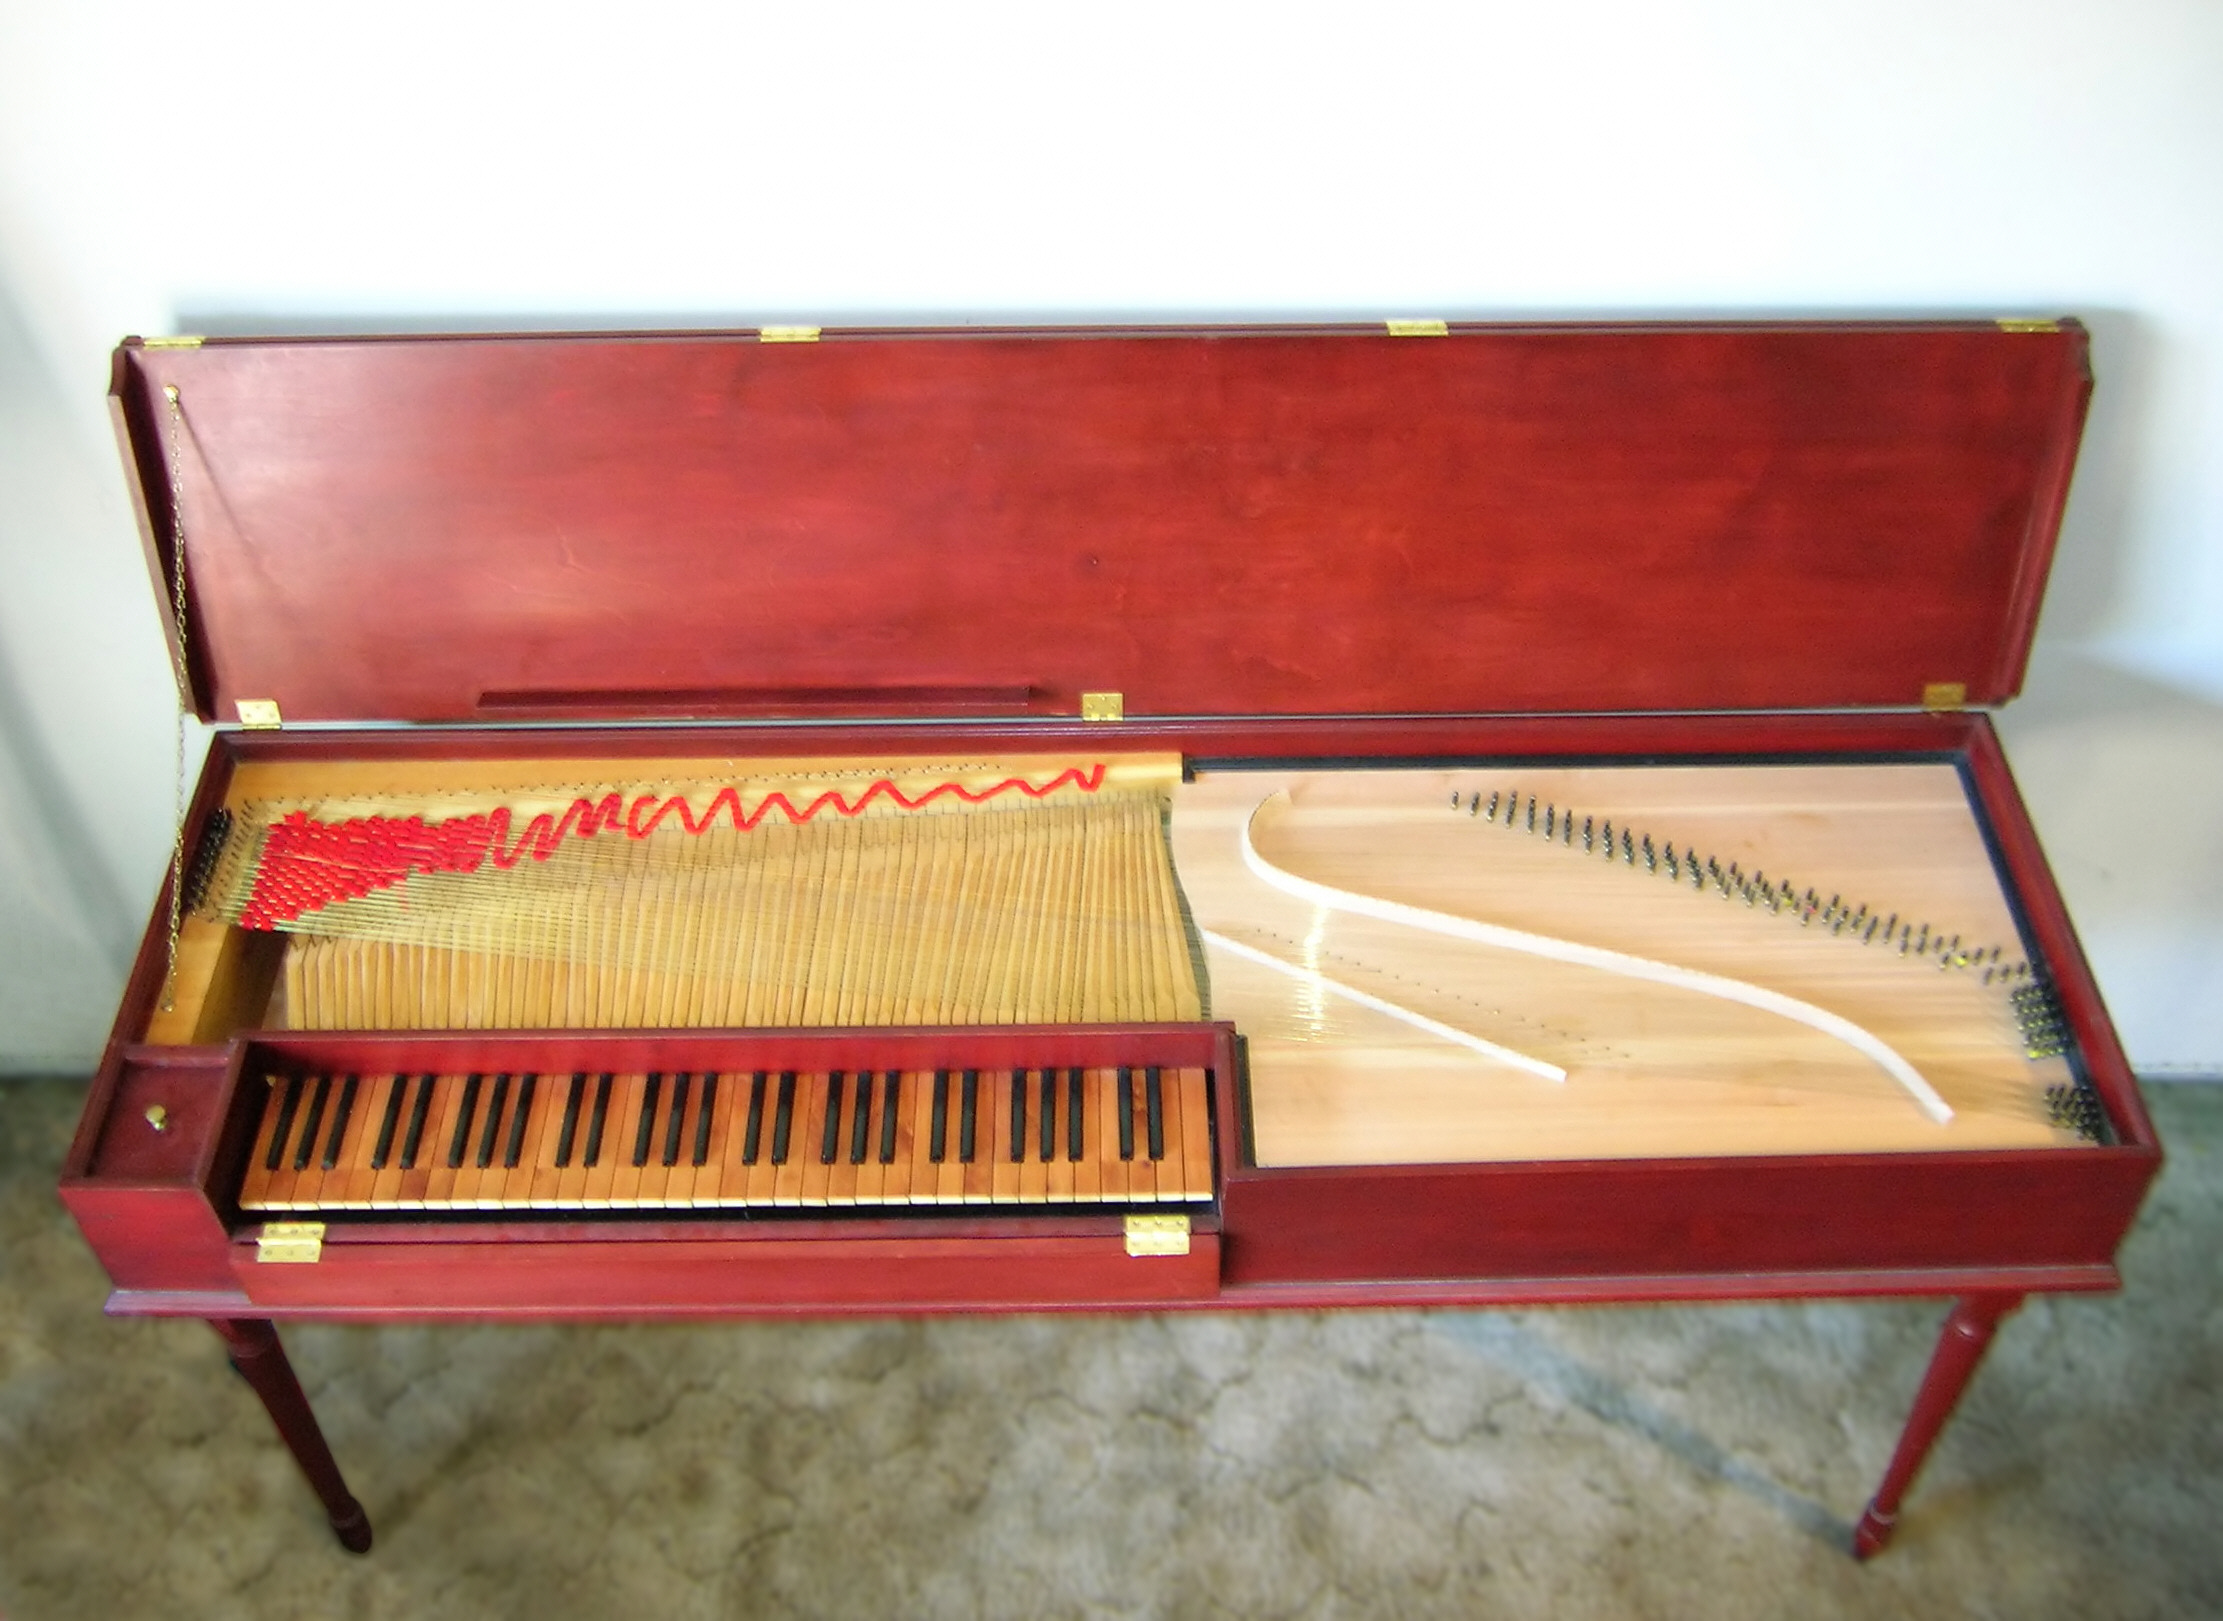 https://upload.wikimedia.org/wikipedia/commons/a/a1/Clavichord-JA_Haas_007_reworked.jpg